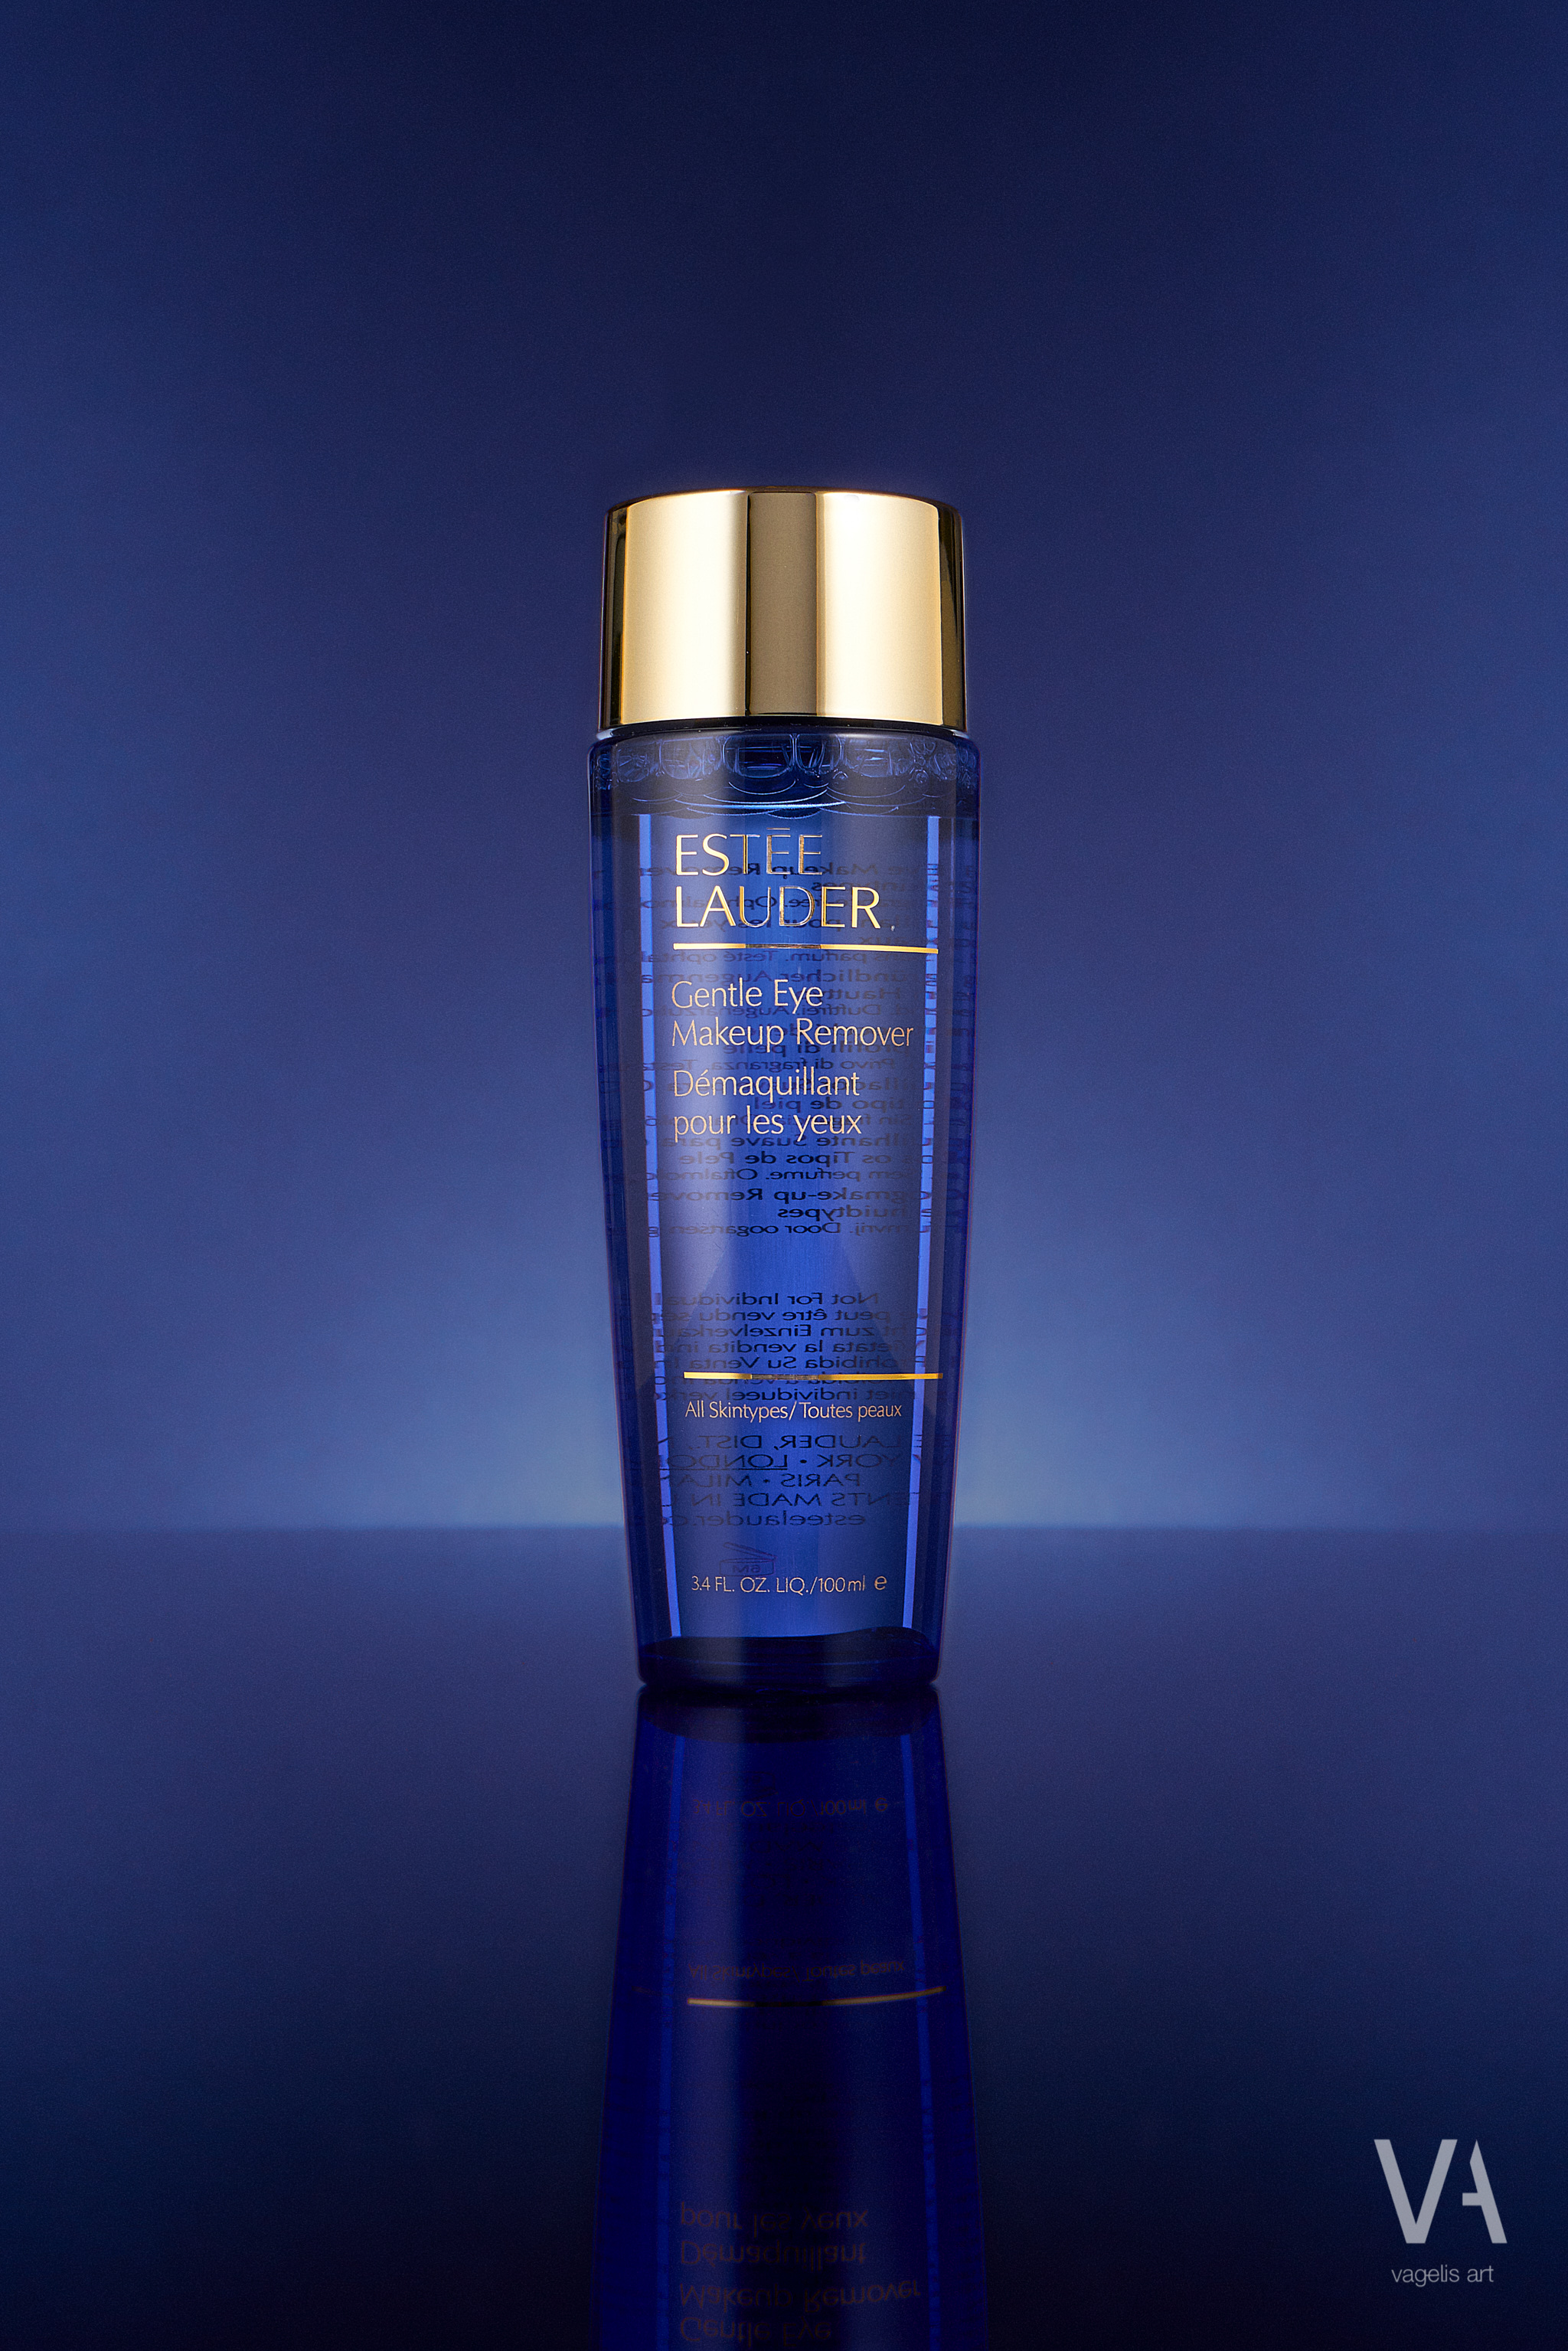 Estee Lauder product photography